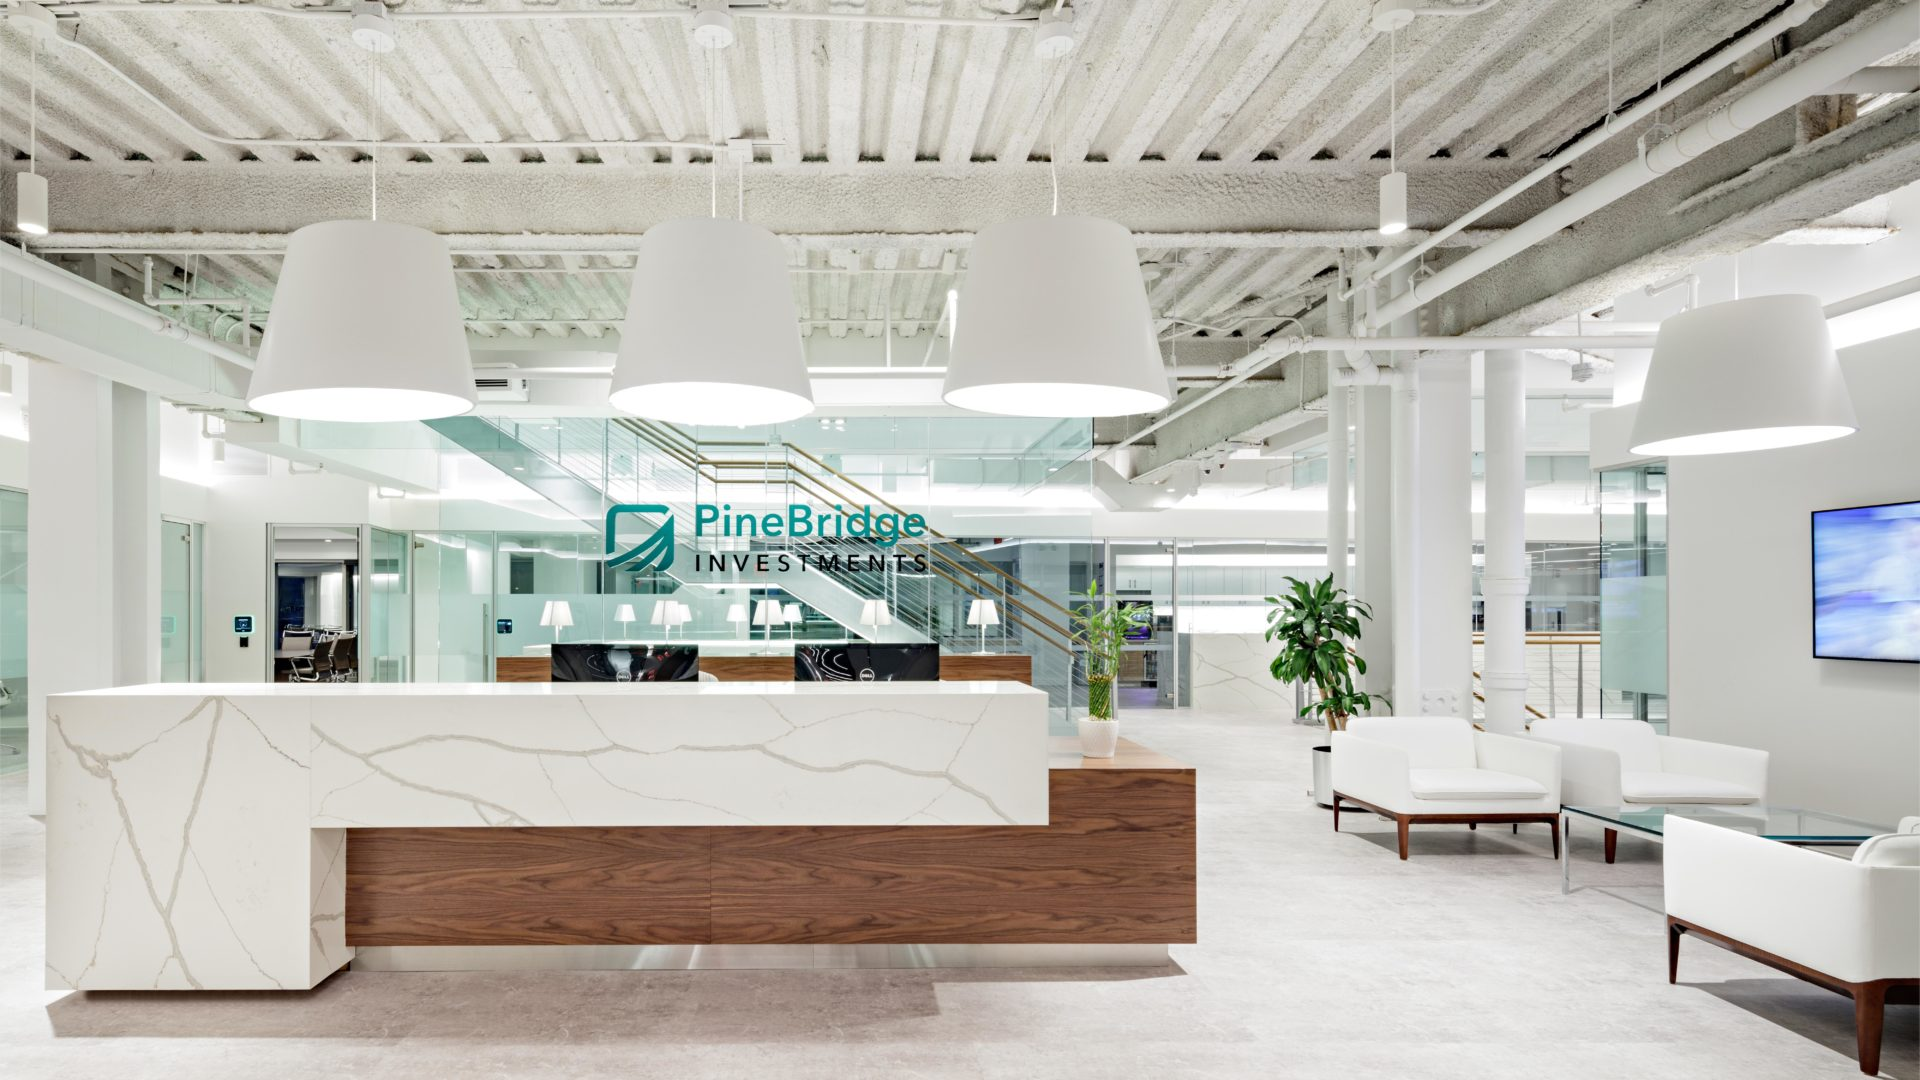 Pinebridge_Reception